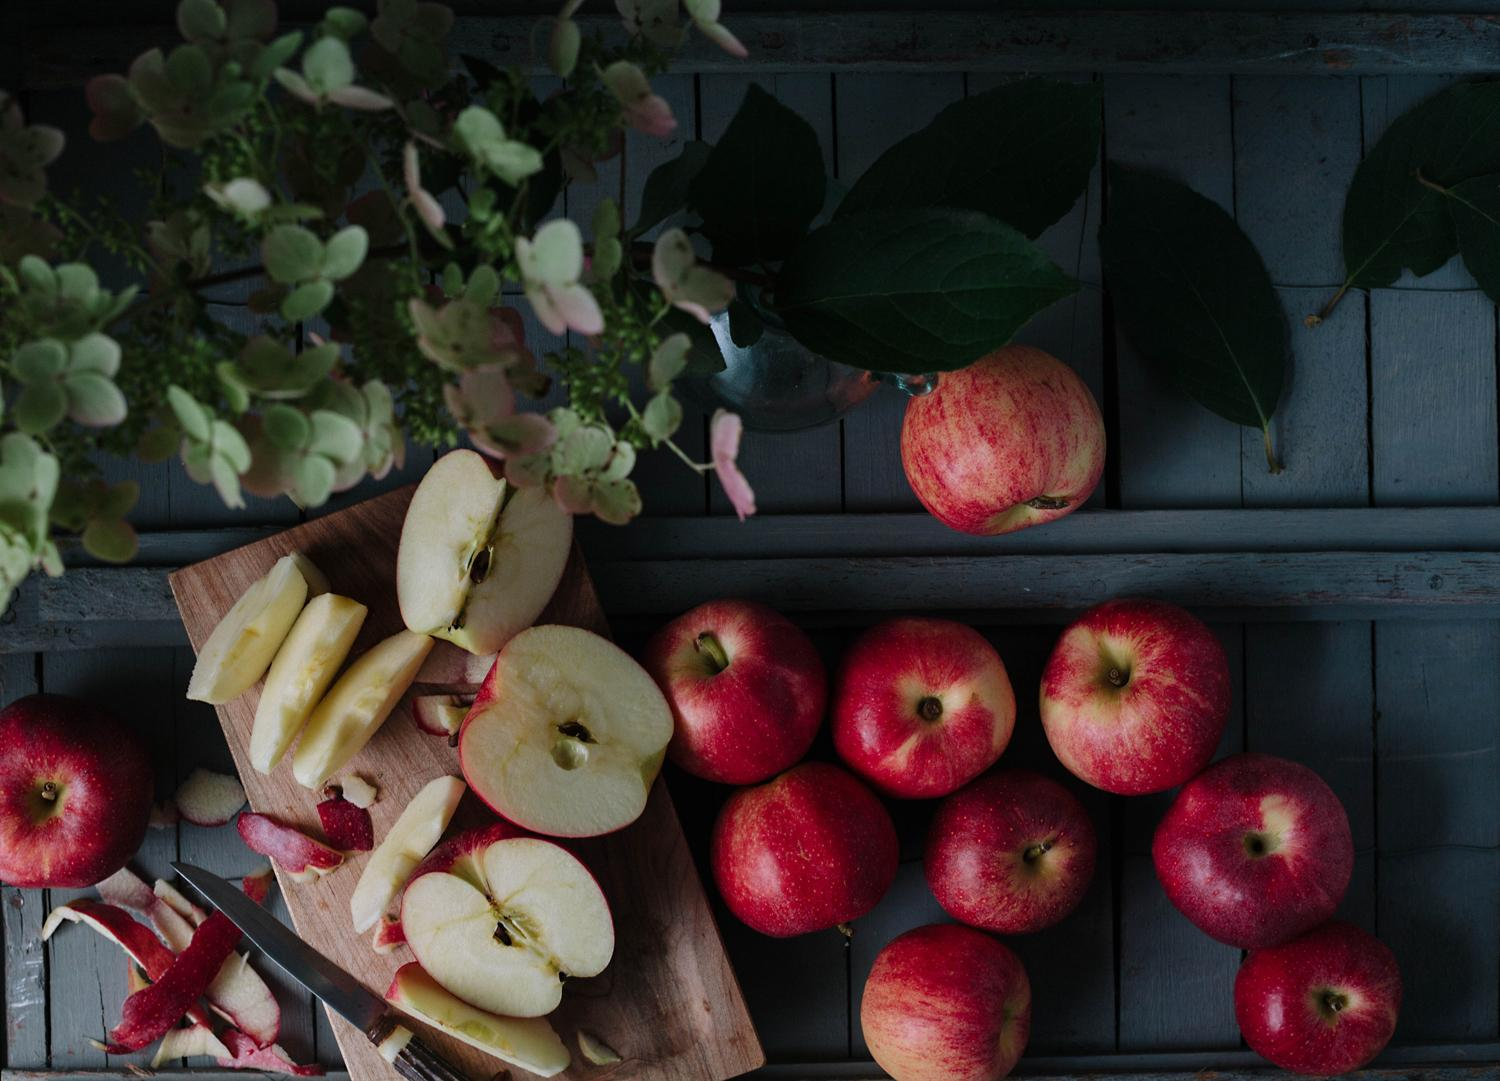 Apples and tomatillos - image 6 - student project